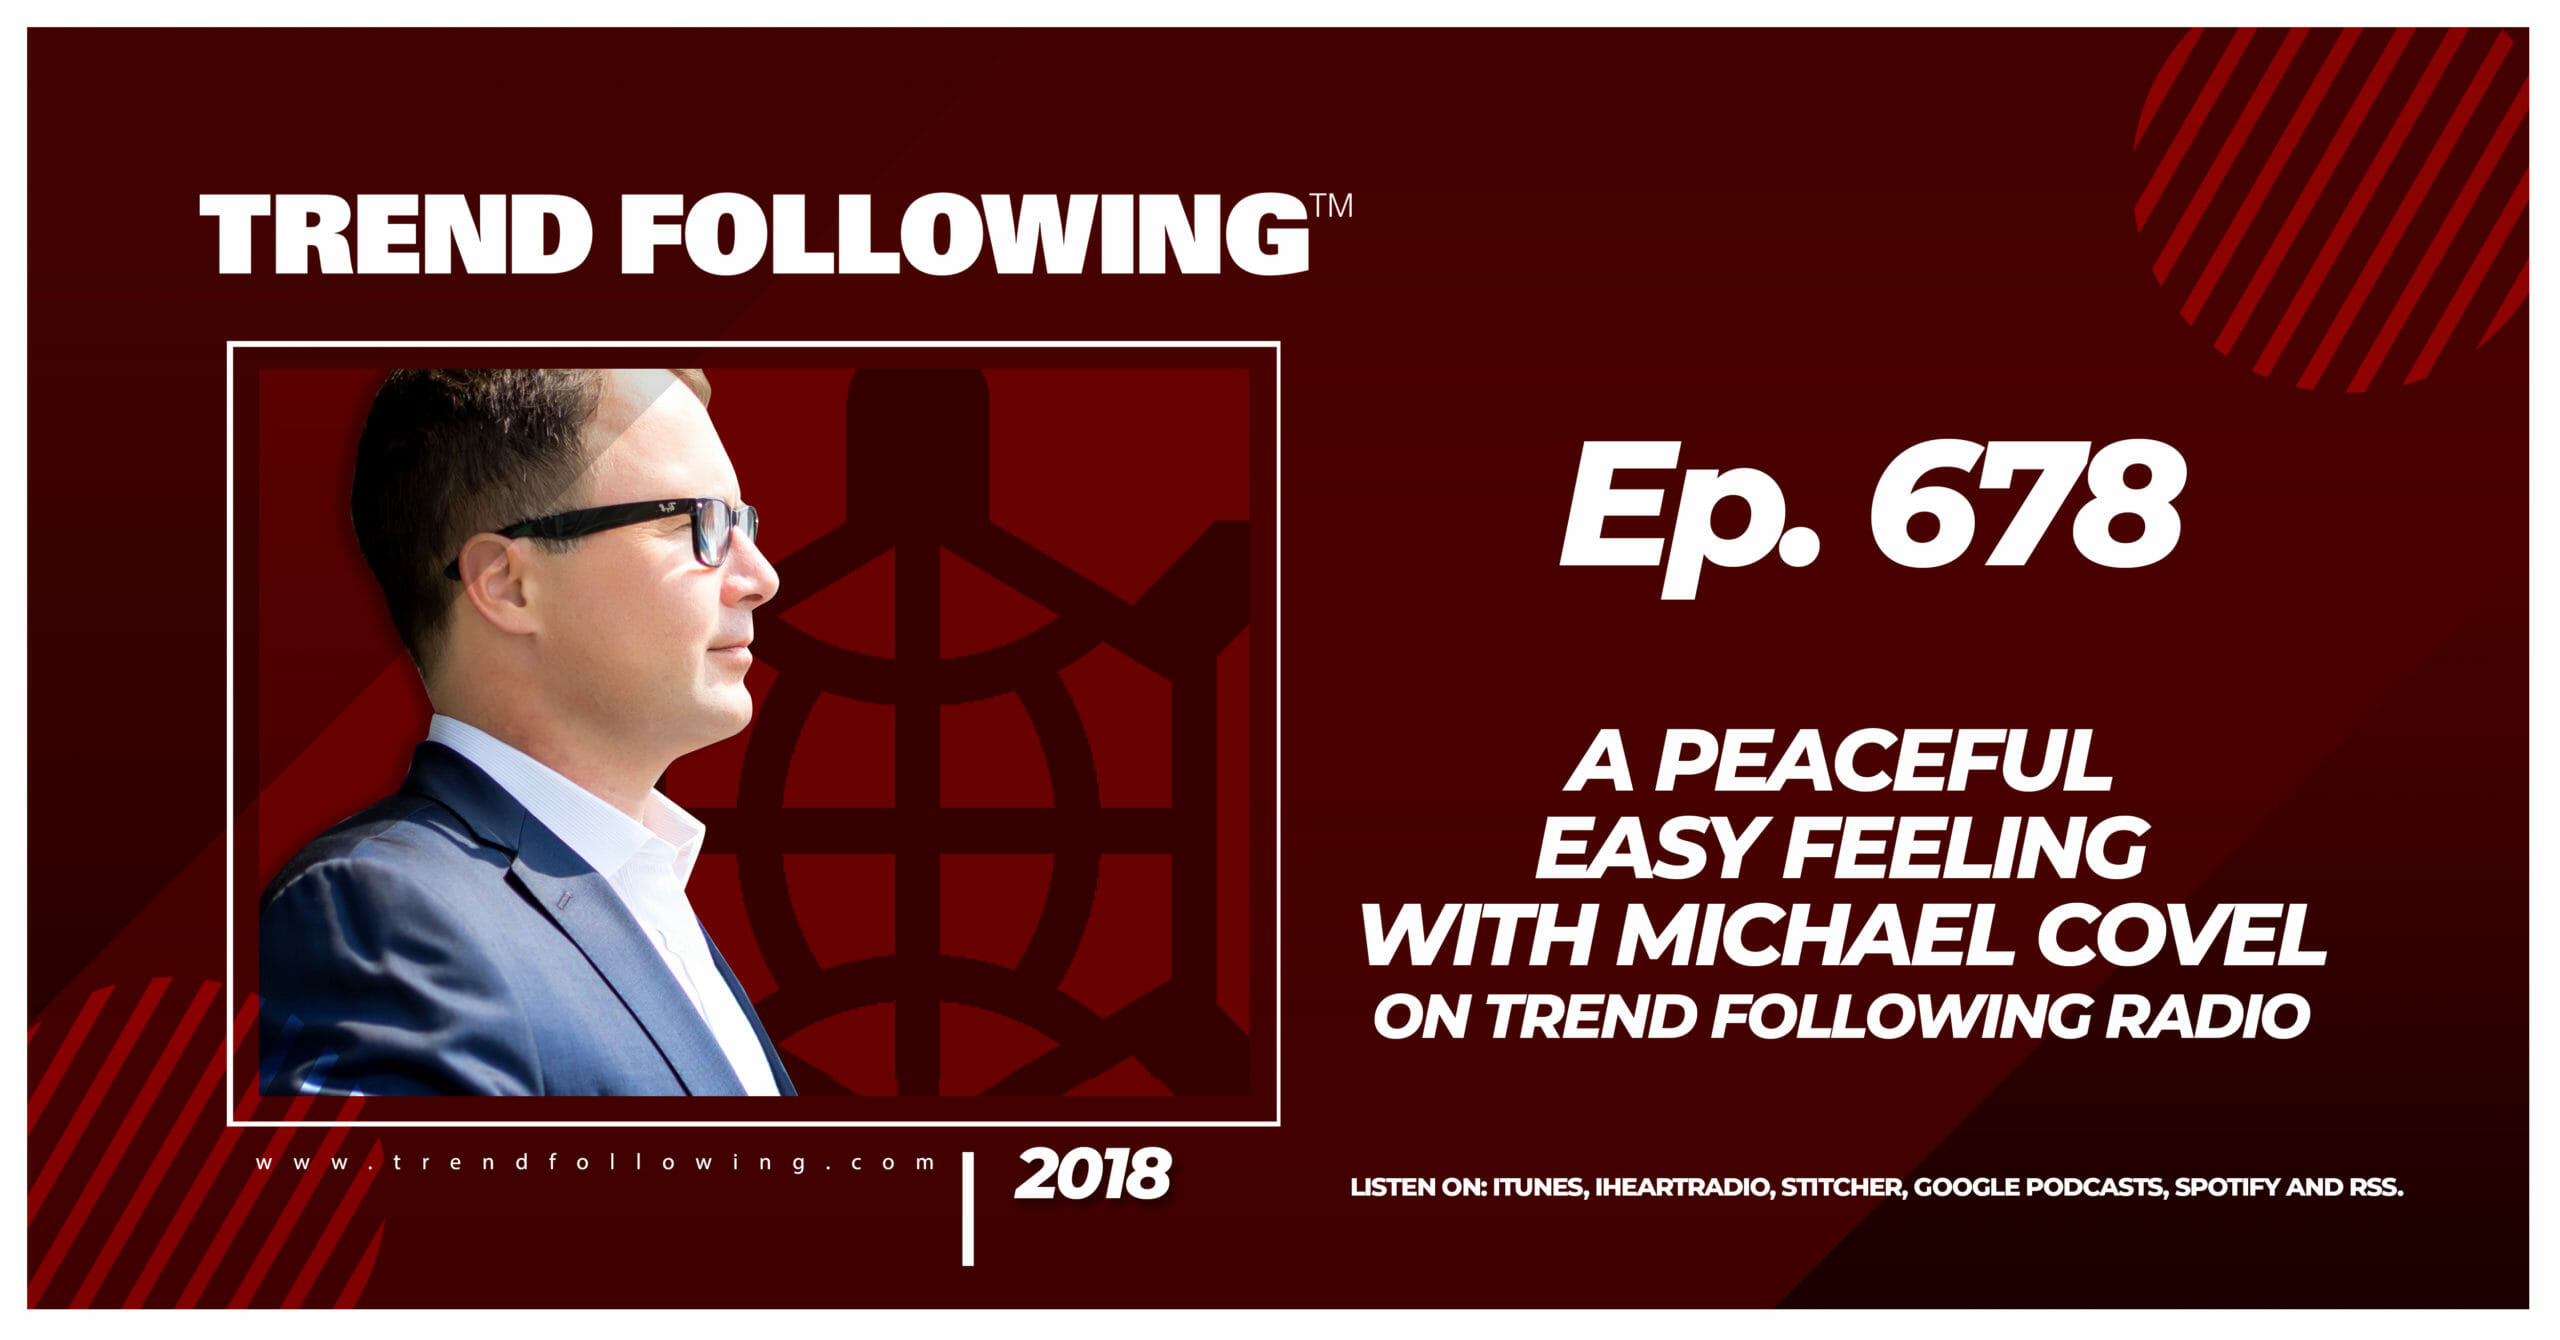 A Peaceful Easy Feeling with Michael Covel